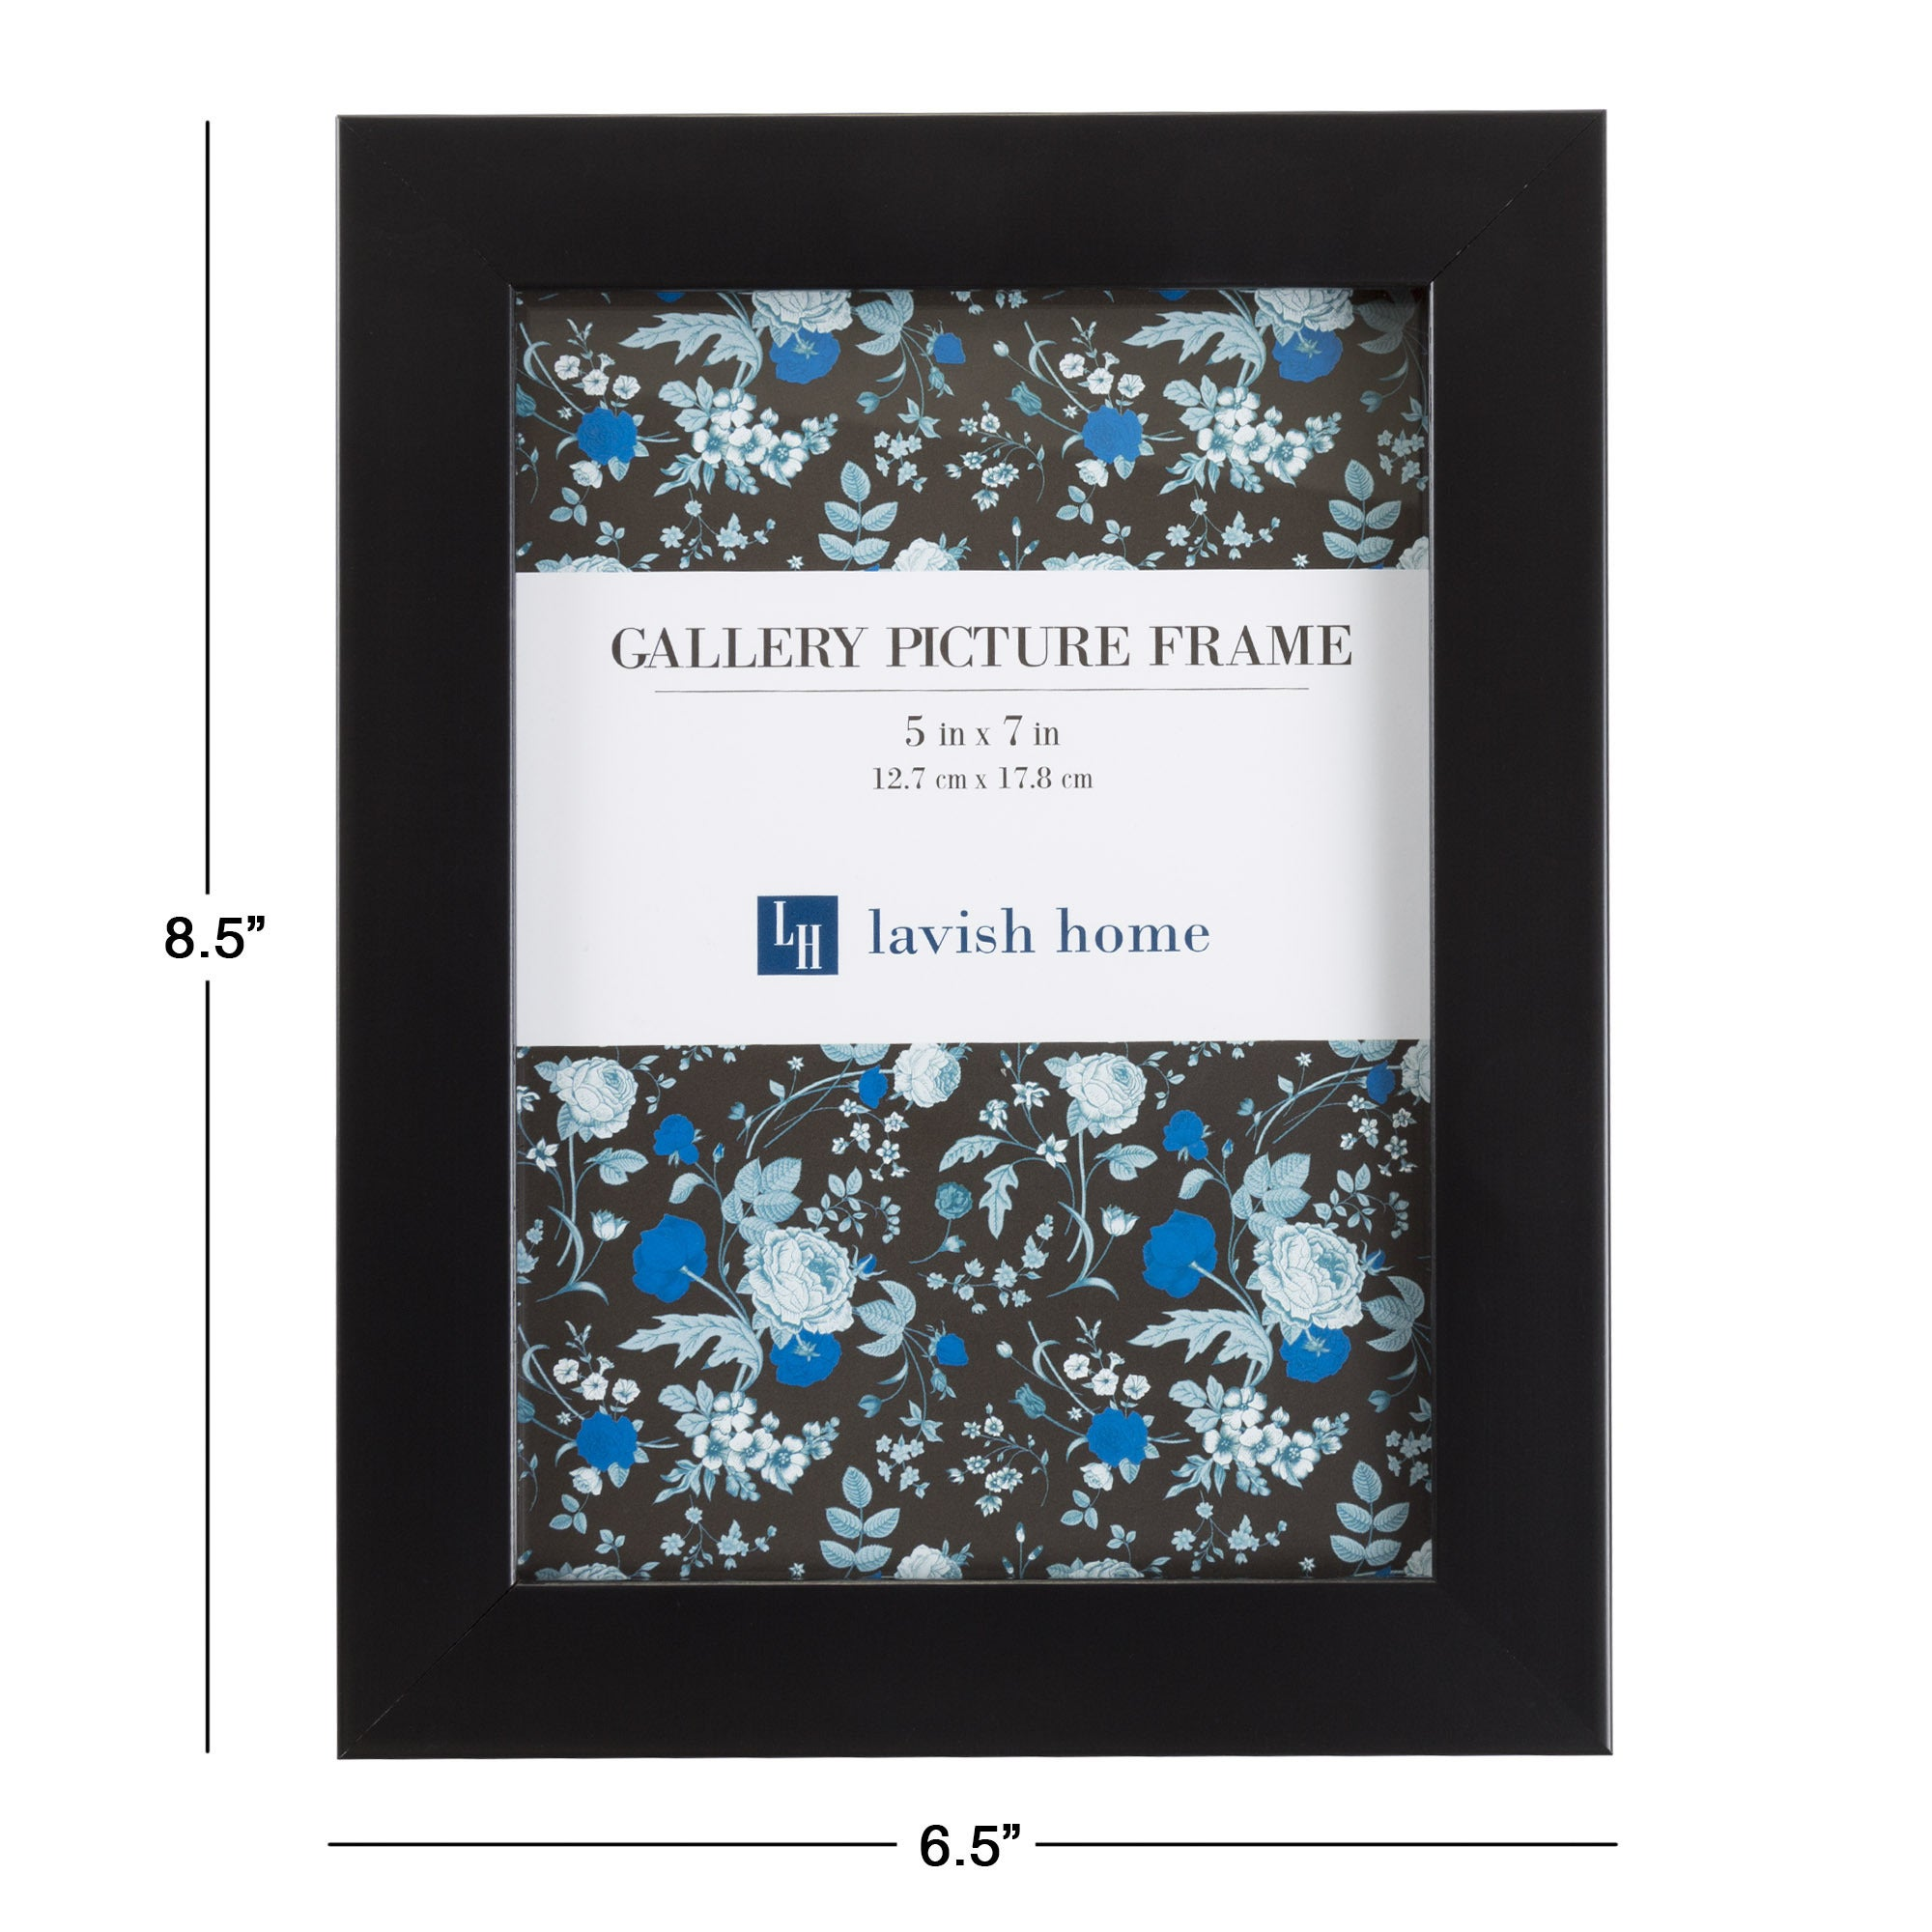 Picture frame set 5x7 frames pack for picture gallery wall with picture frame set 5x7 frames pack for picture gallery wall with stand and hanging hooks set of 6 by lavish home black free shipping on orders over 45 jeuxipadfo Gallery